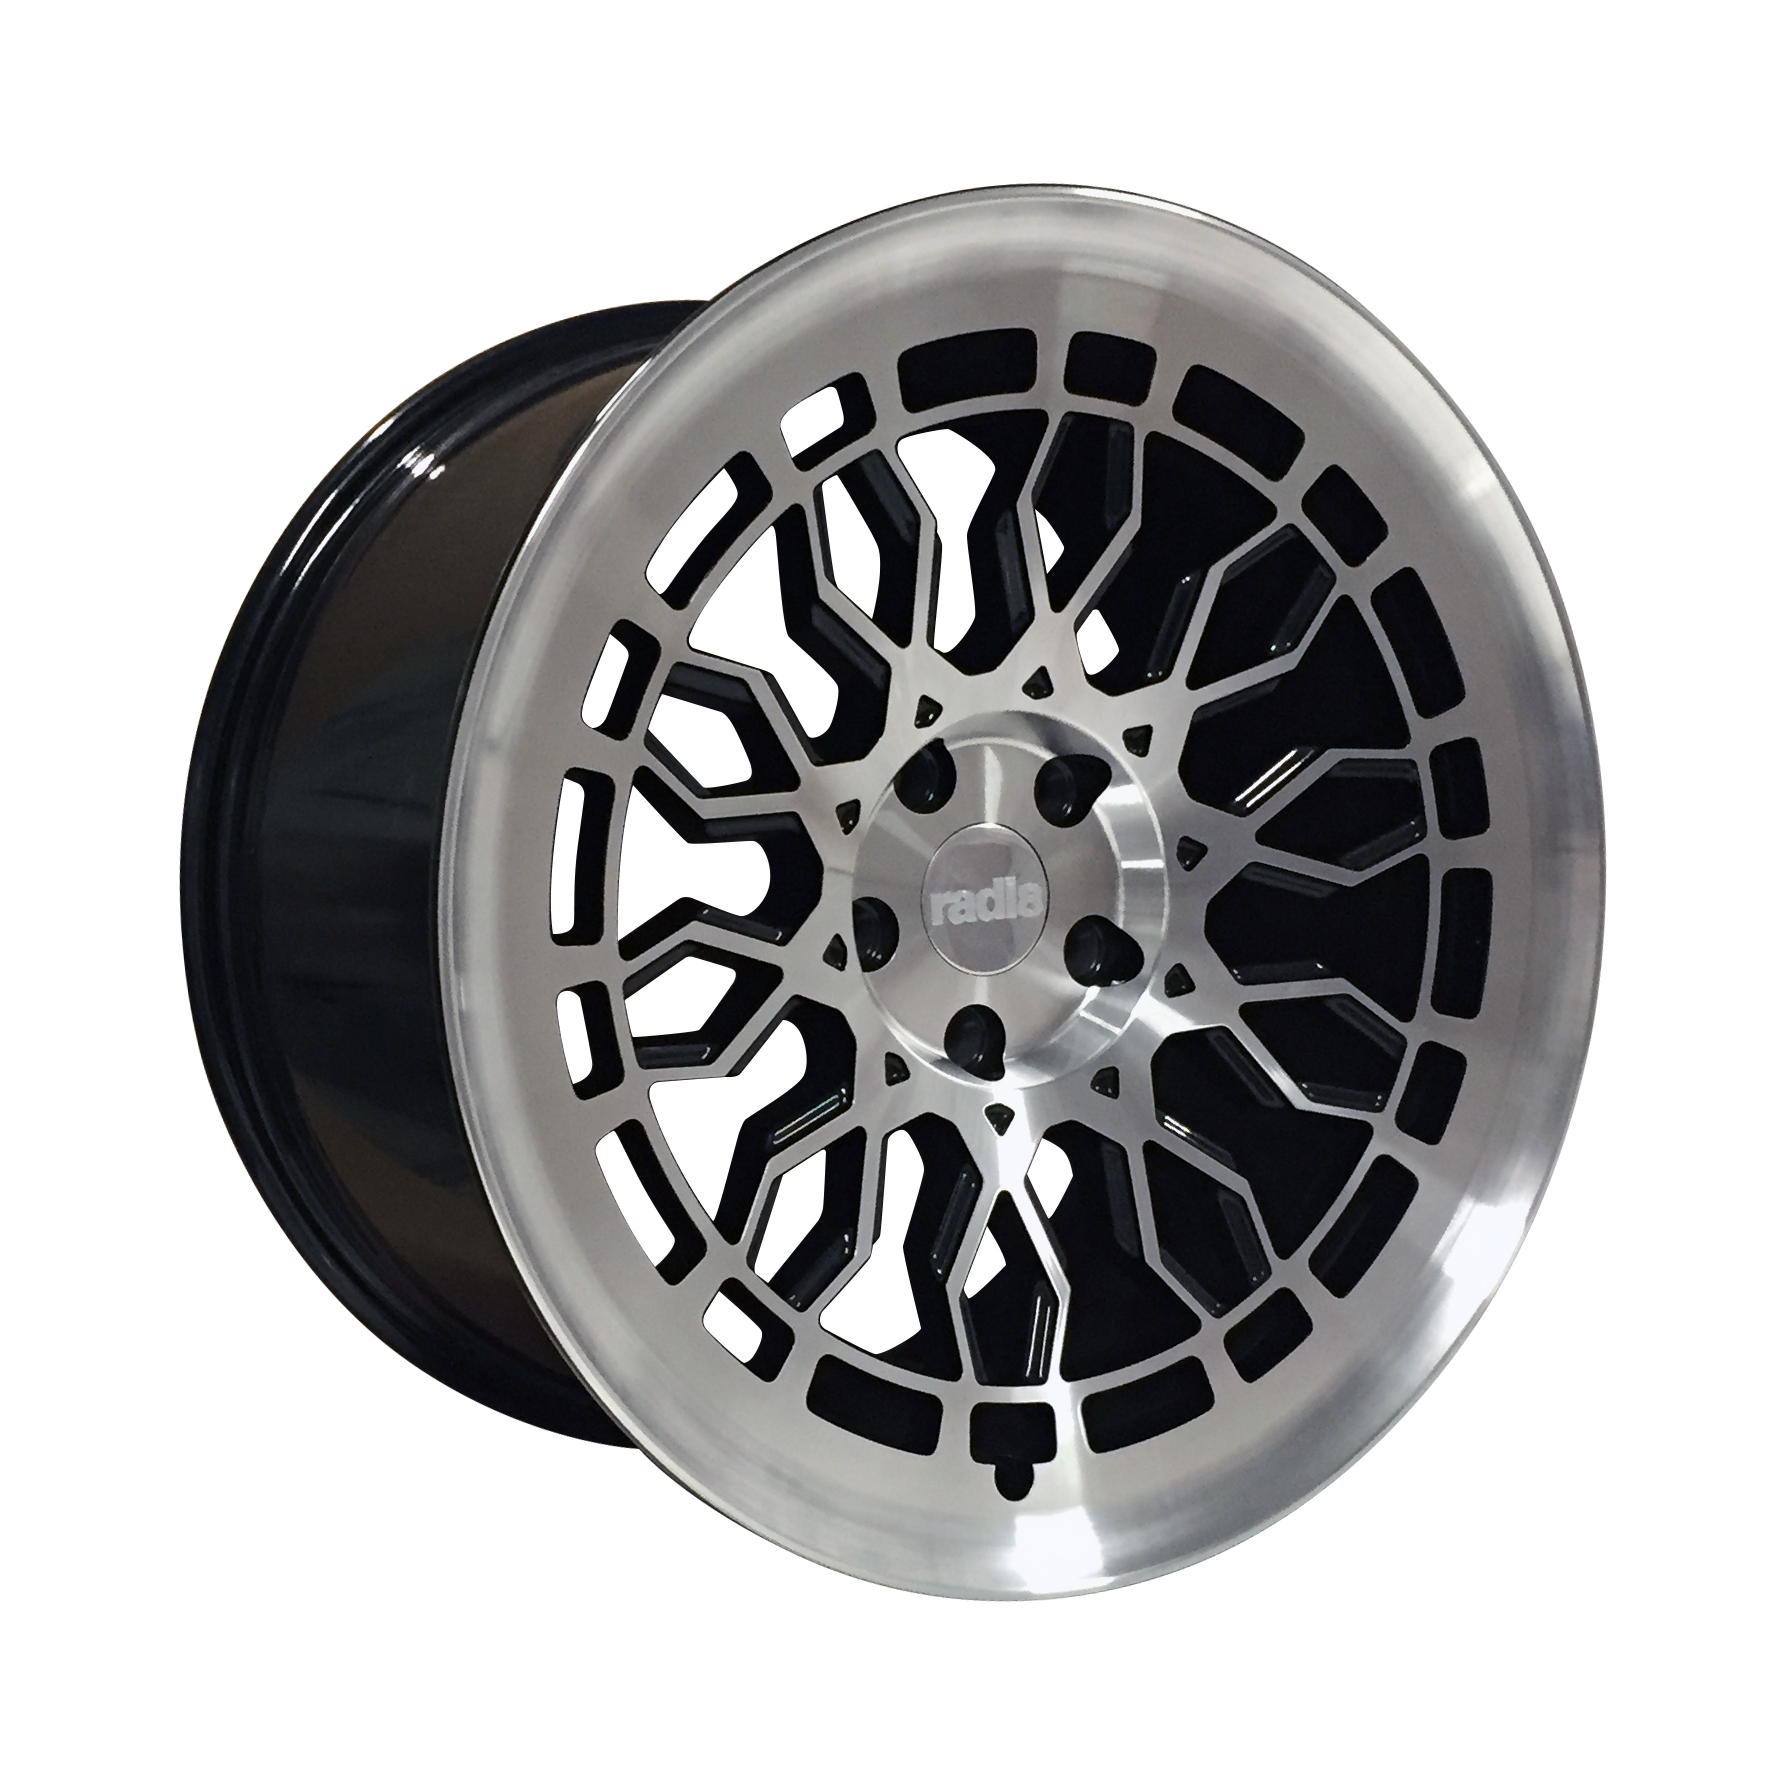 "NEW 18"" RADI8 R8A10 ALLOY WHEELS IN GLOSS BLACK WITH POLISHED FACE, WIDER 9.5"" REARS"